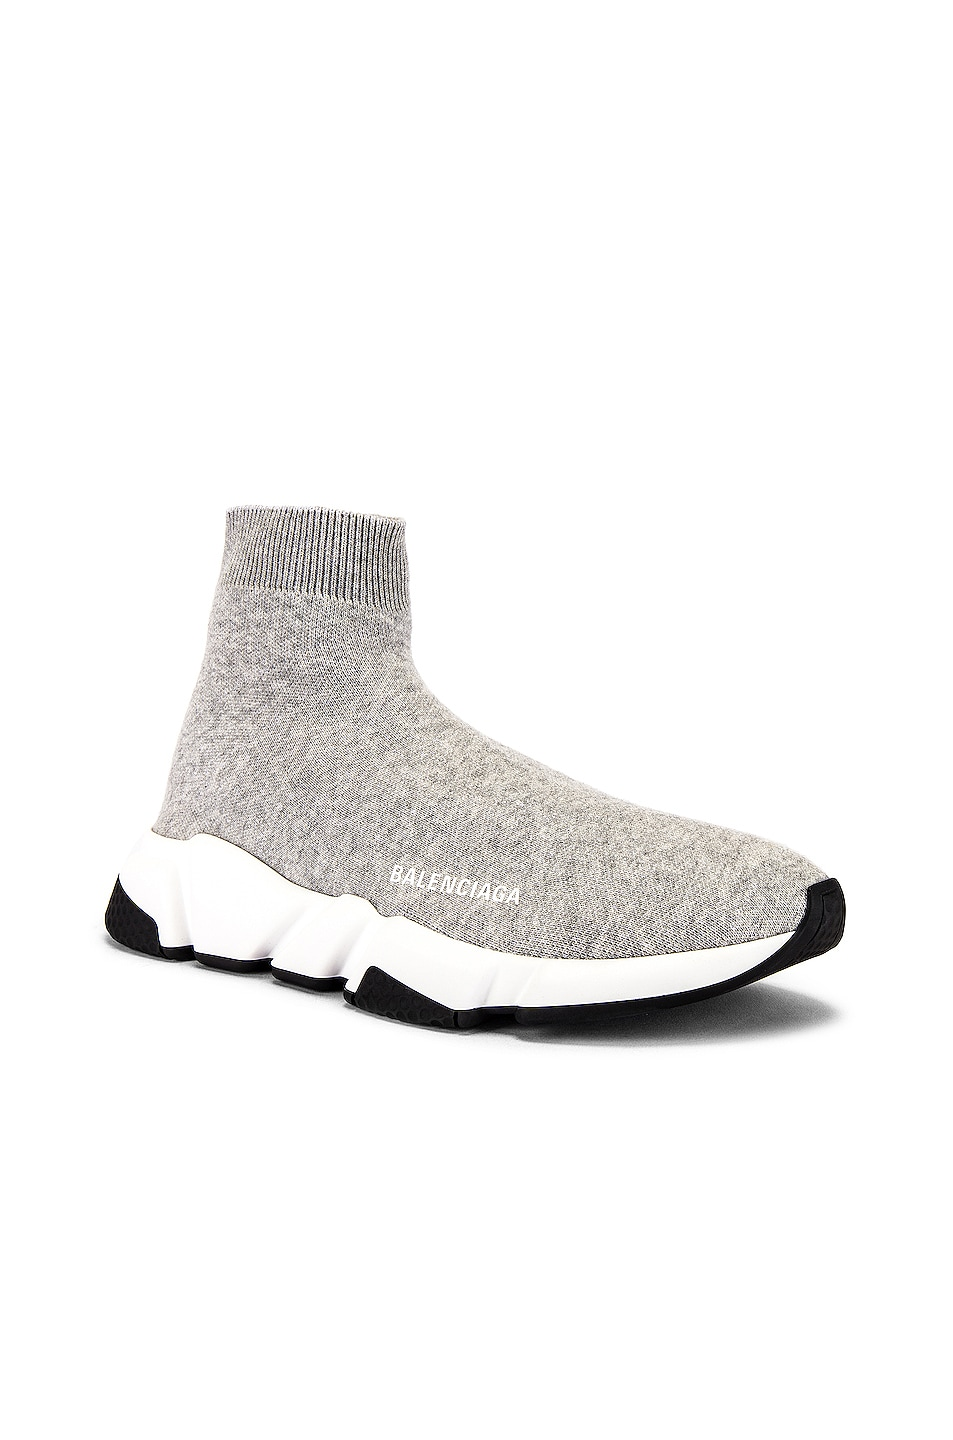 Image 1 of Balenciaga Speed Light Sneaker in Grey & White & Black